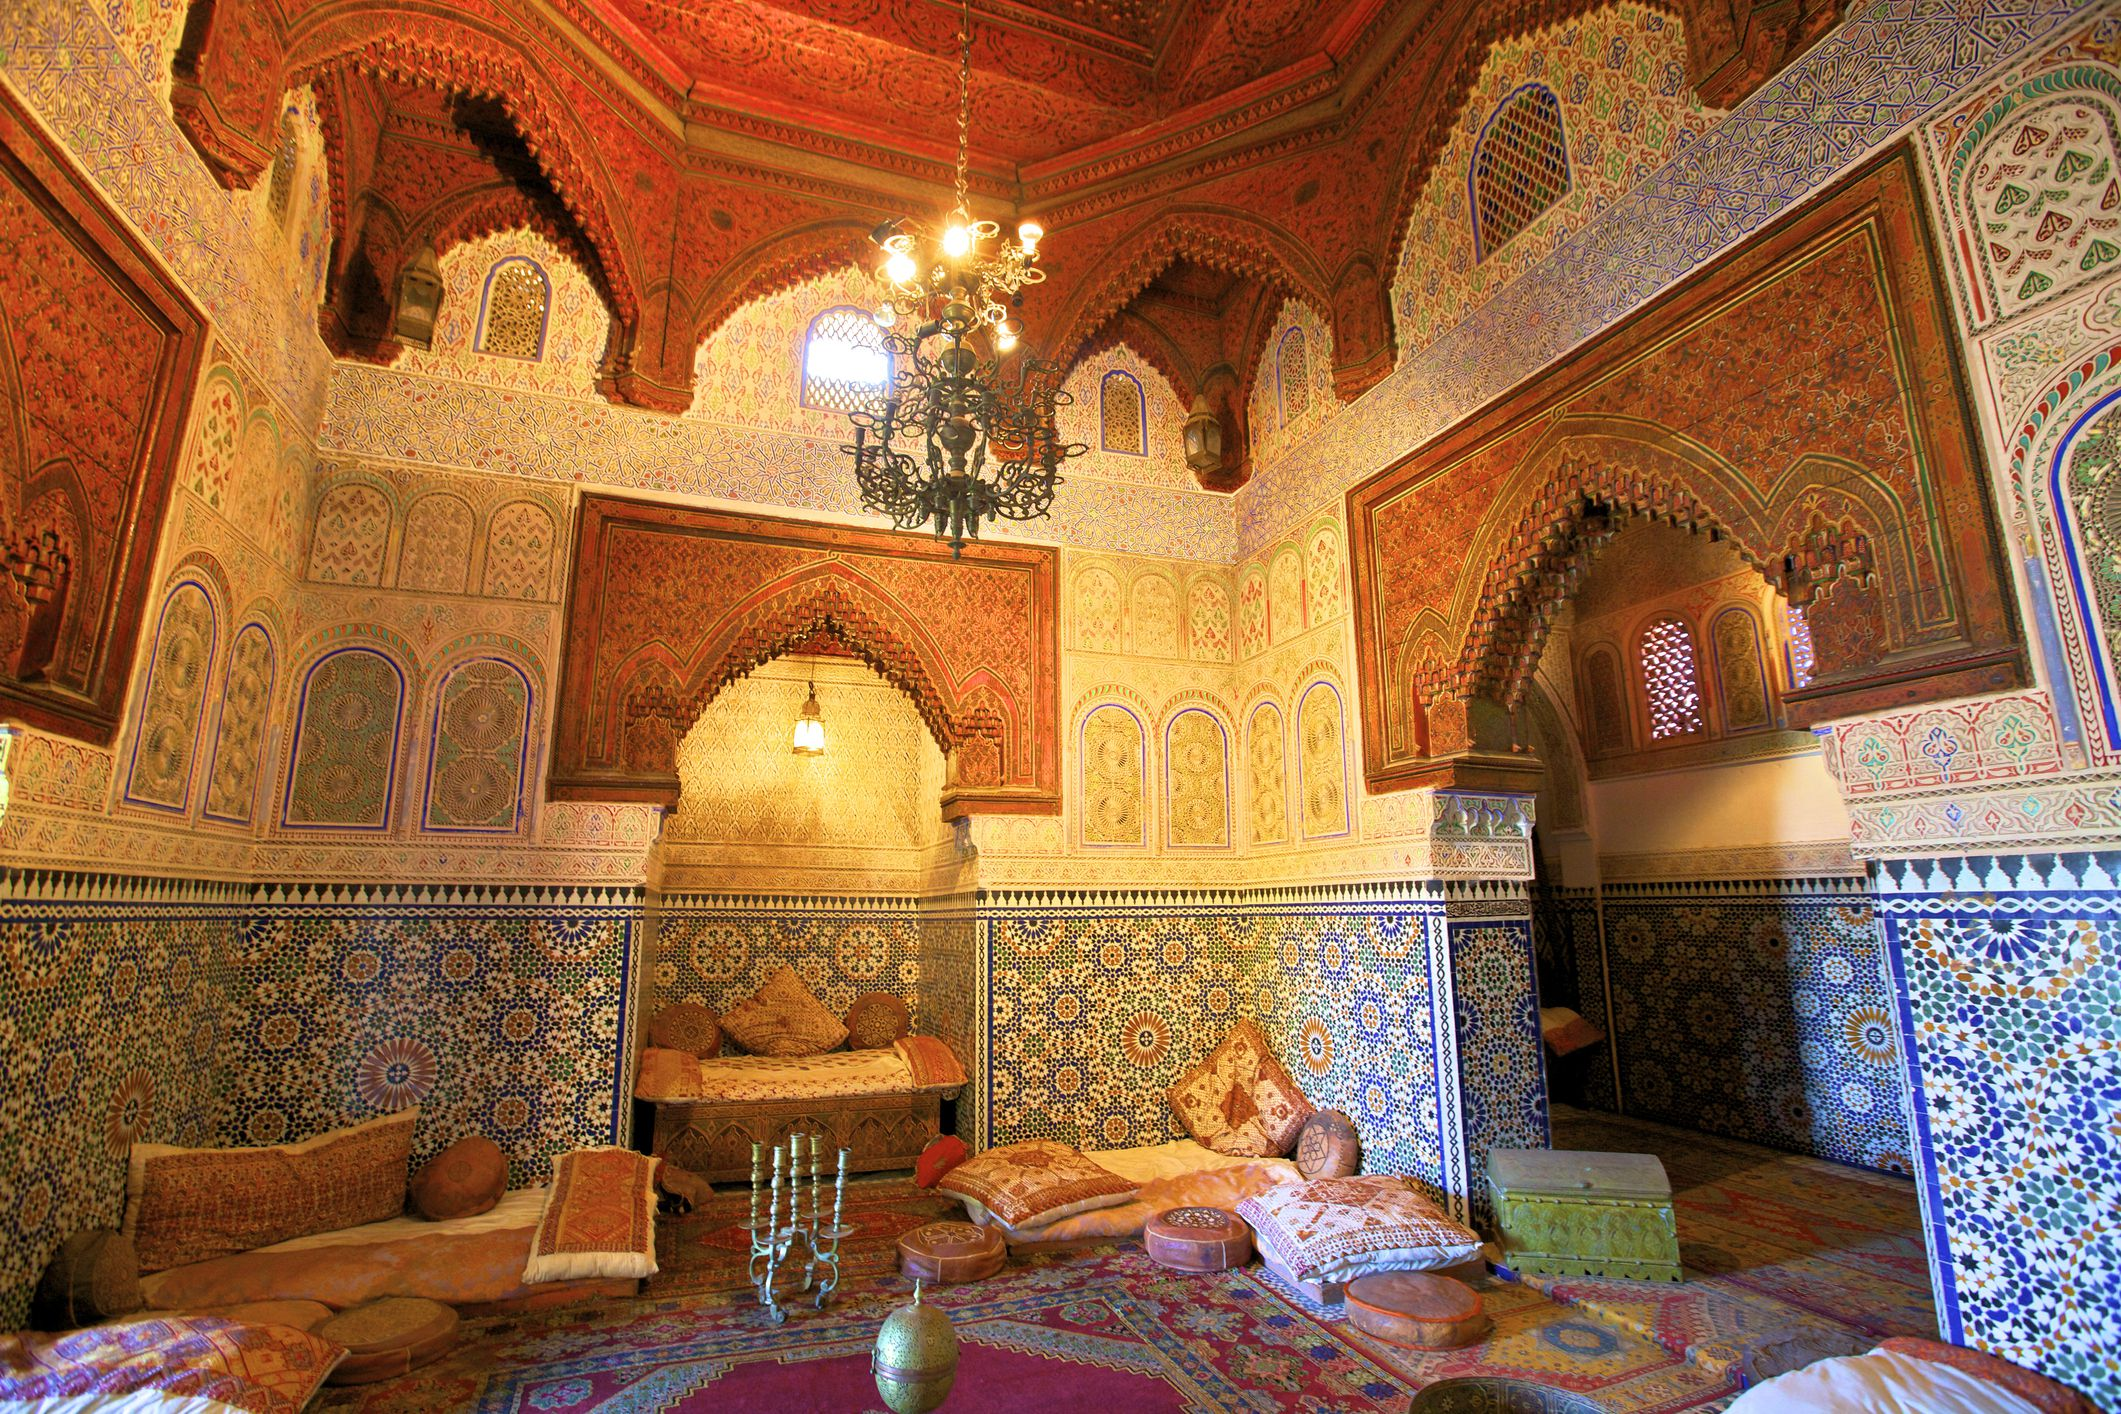 Top Things To Do In Meknes Morocco